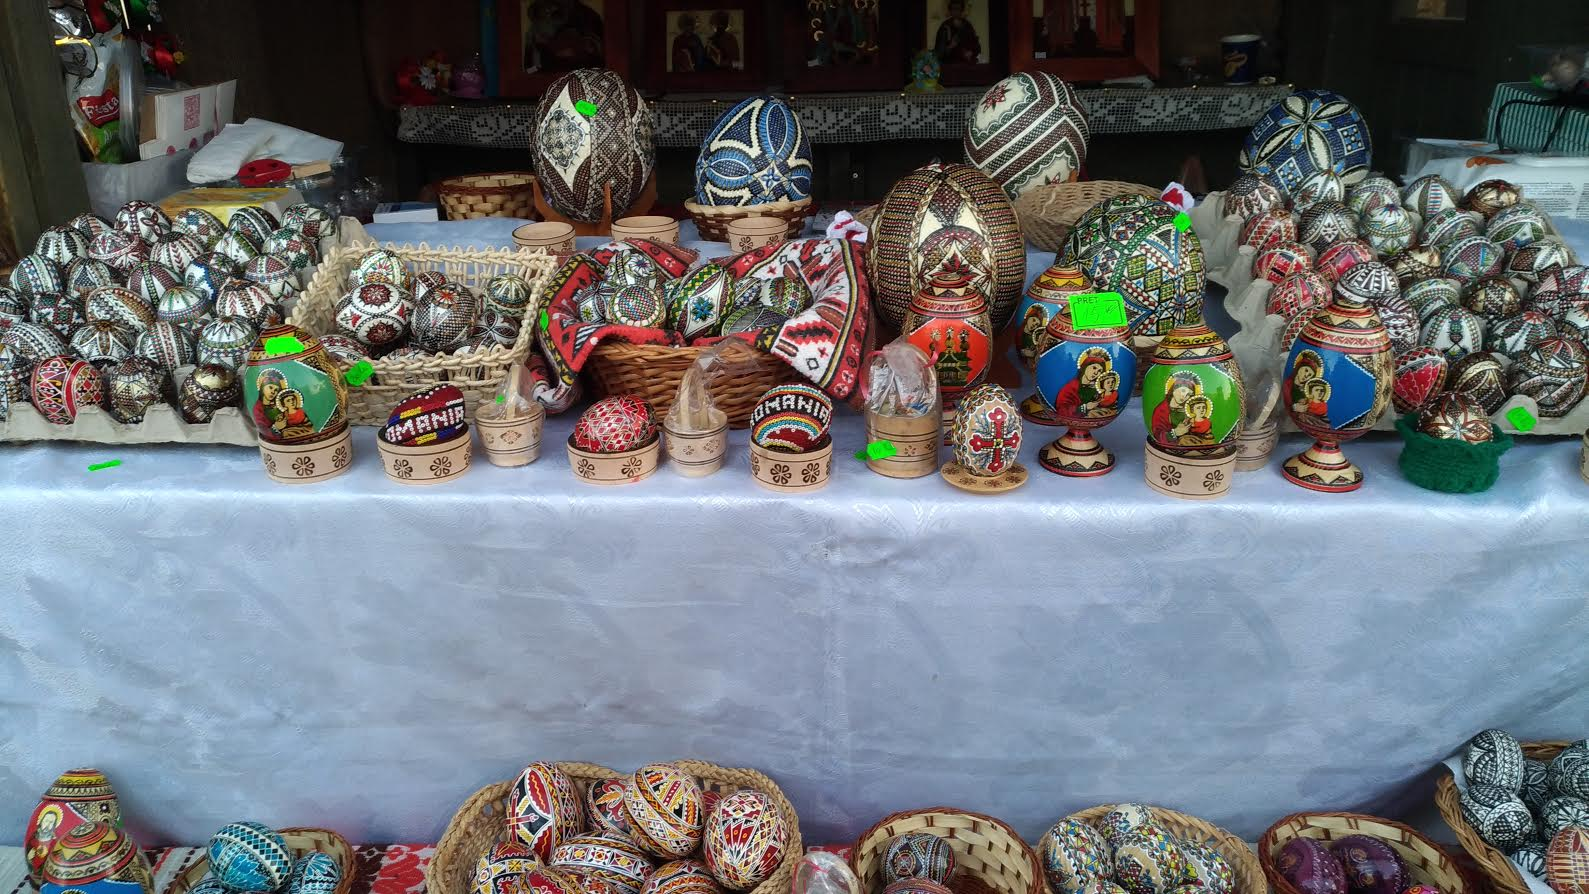 Easter Market in Bucharest, Romania - various eggs manually decorated/painted